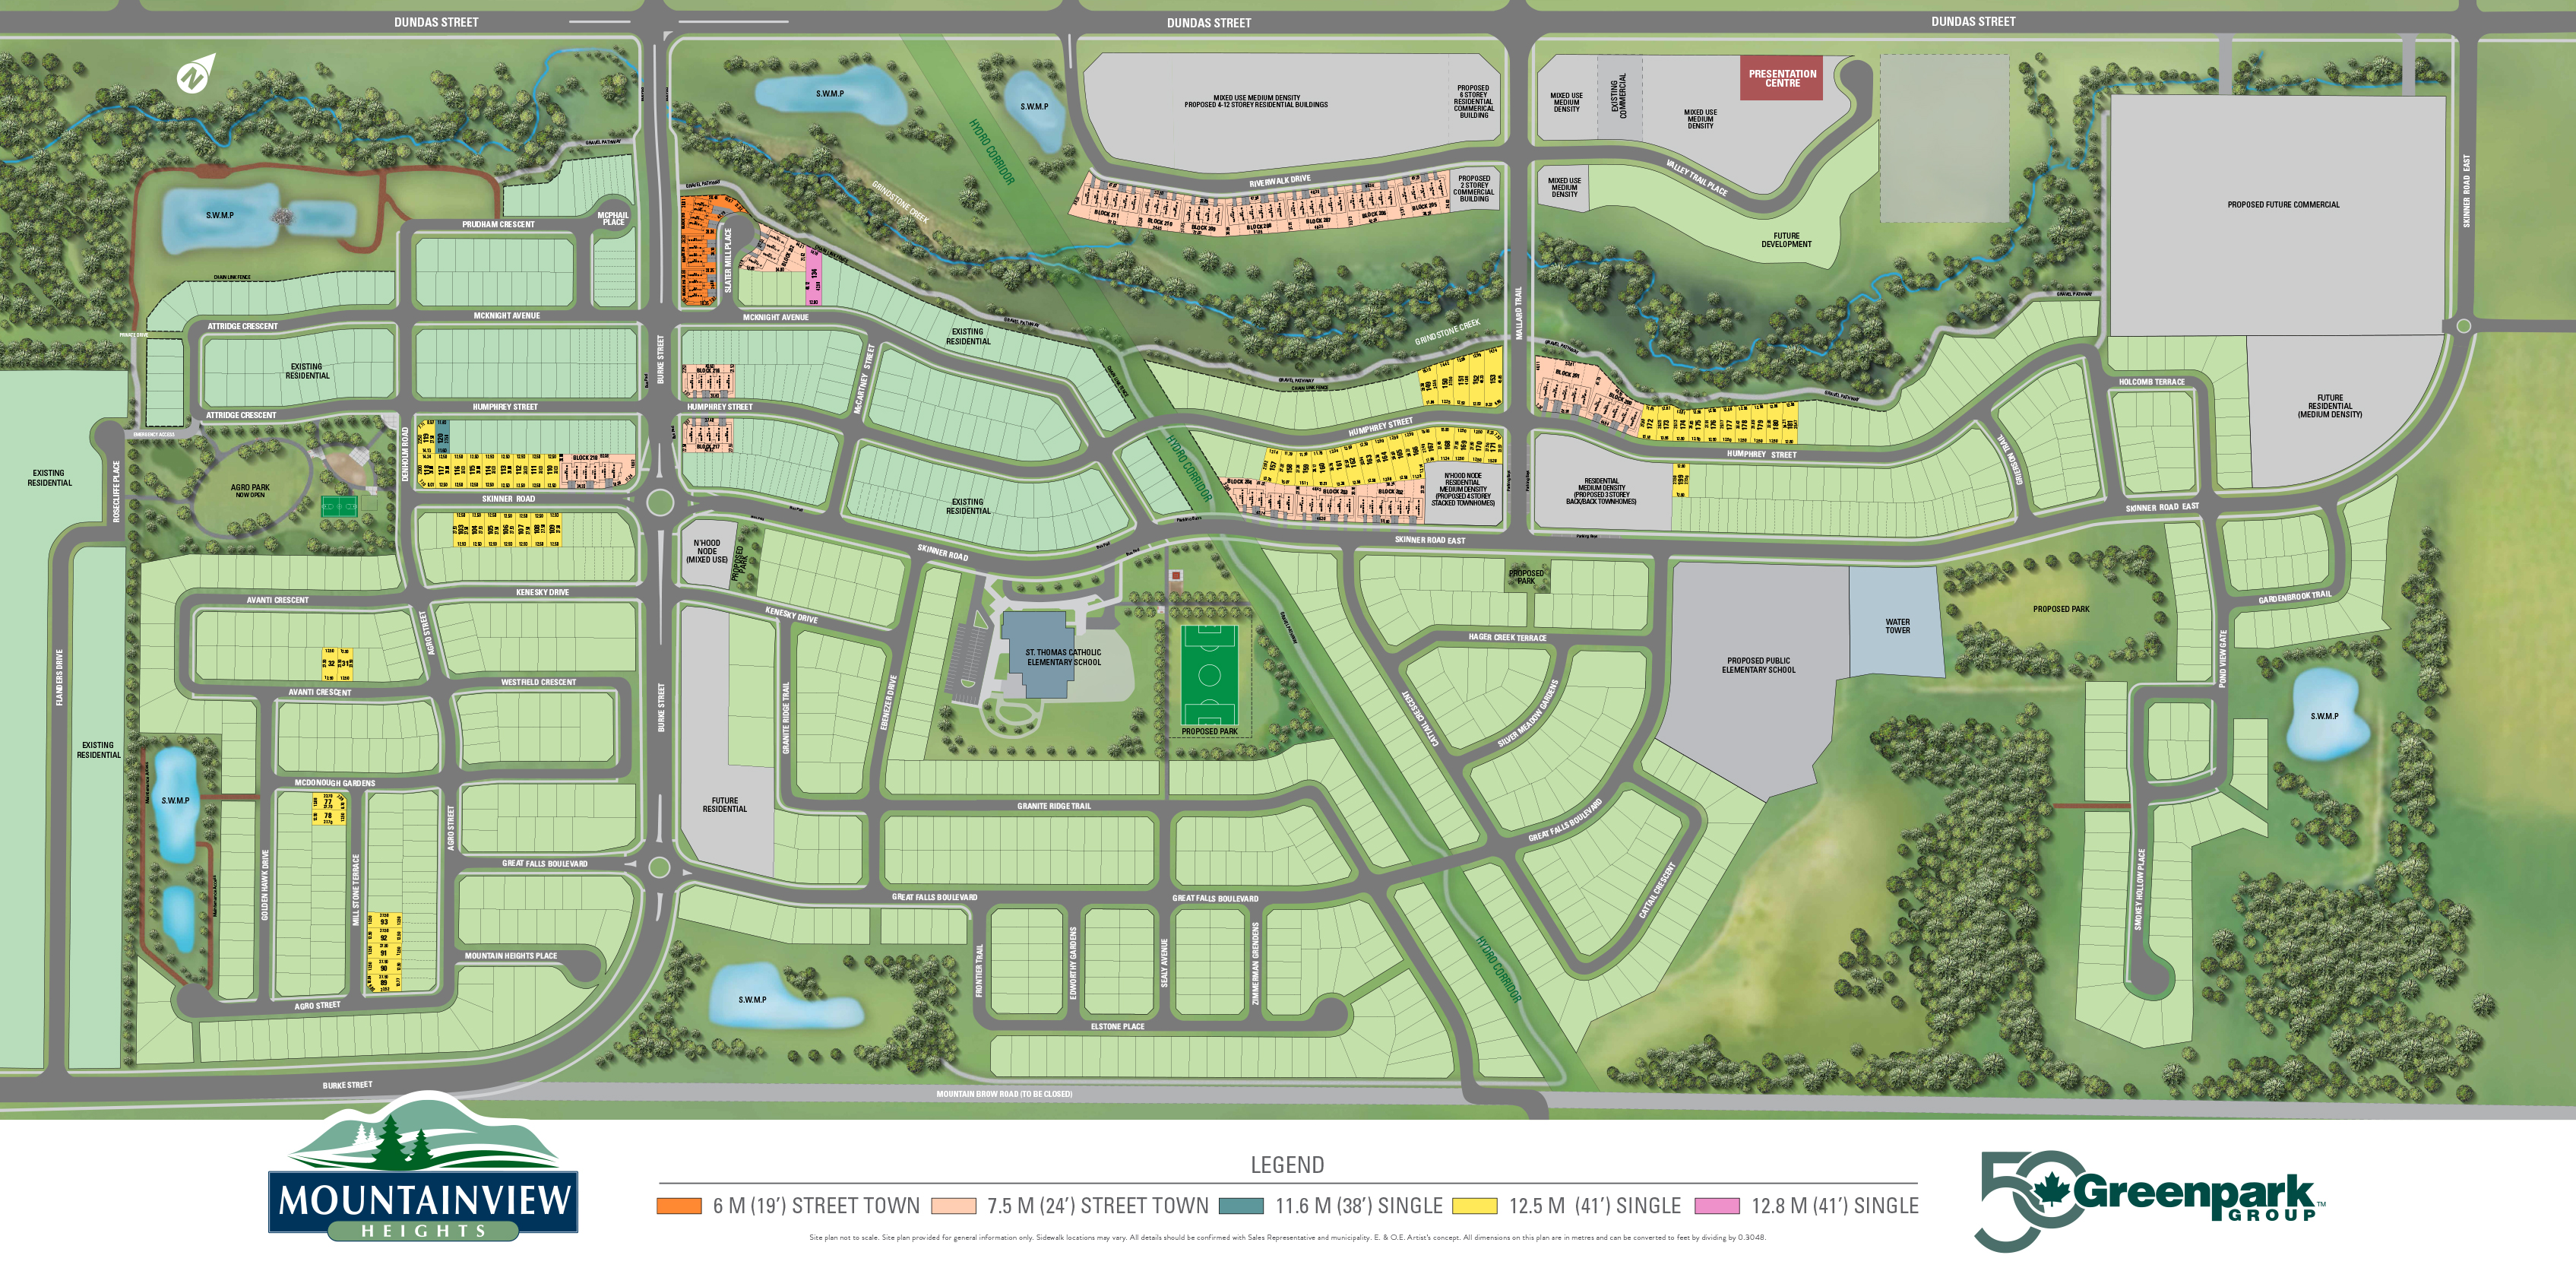 Site plan for Mountainview Heights (GP) in Waterdown, Ontario